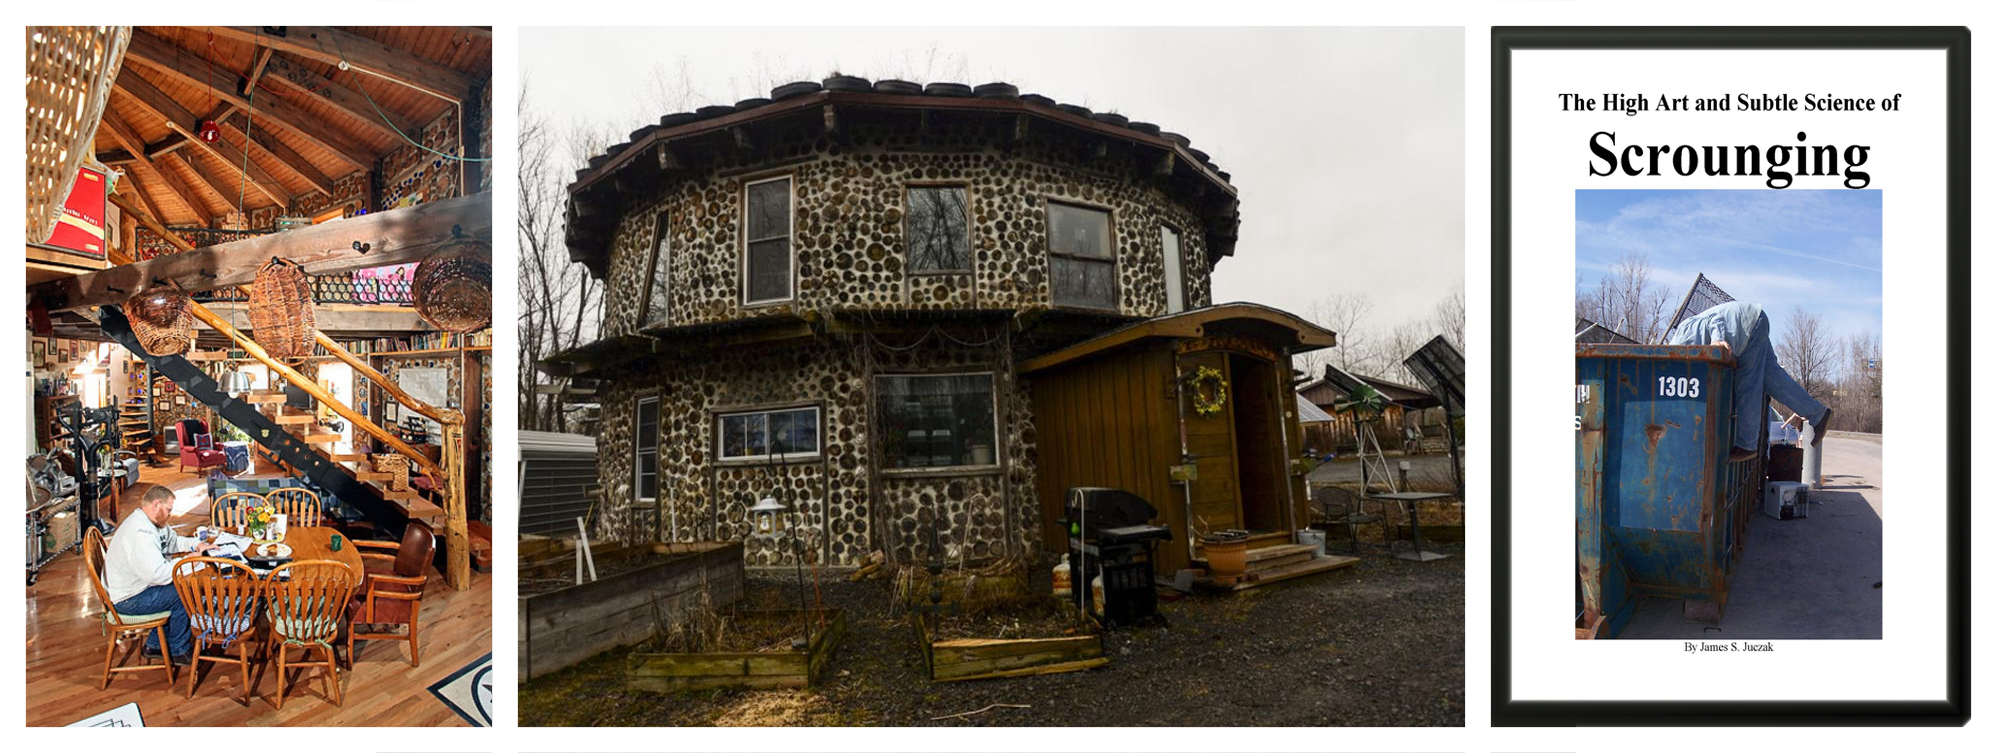 Cordwood papercrete home and The Art of Scounging